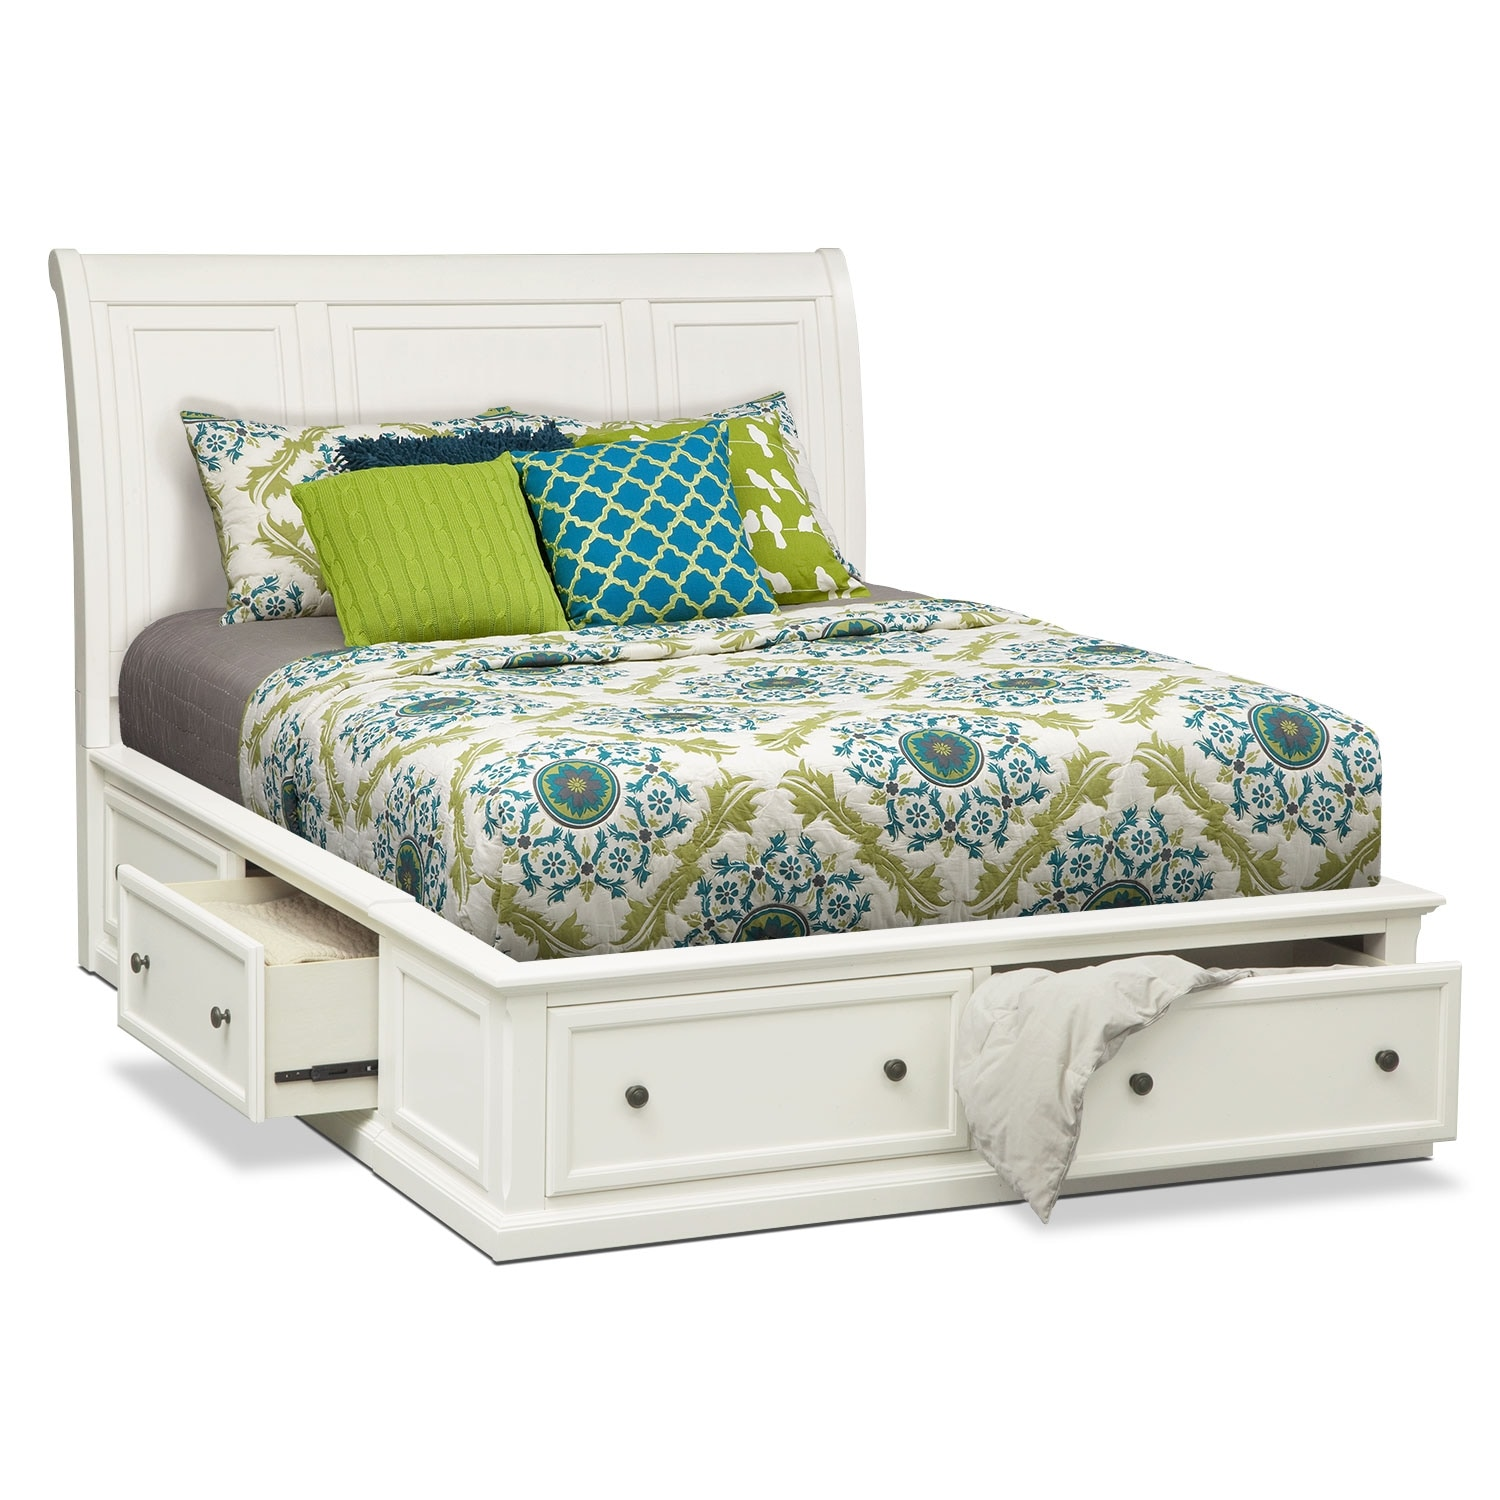 Hanover queen storage bed white american signature for White queen bedroom set